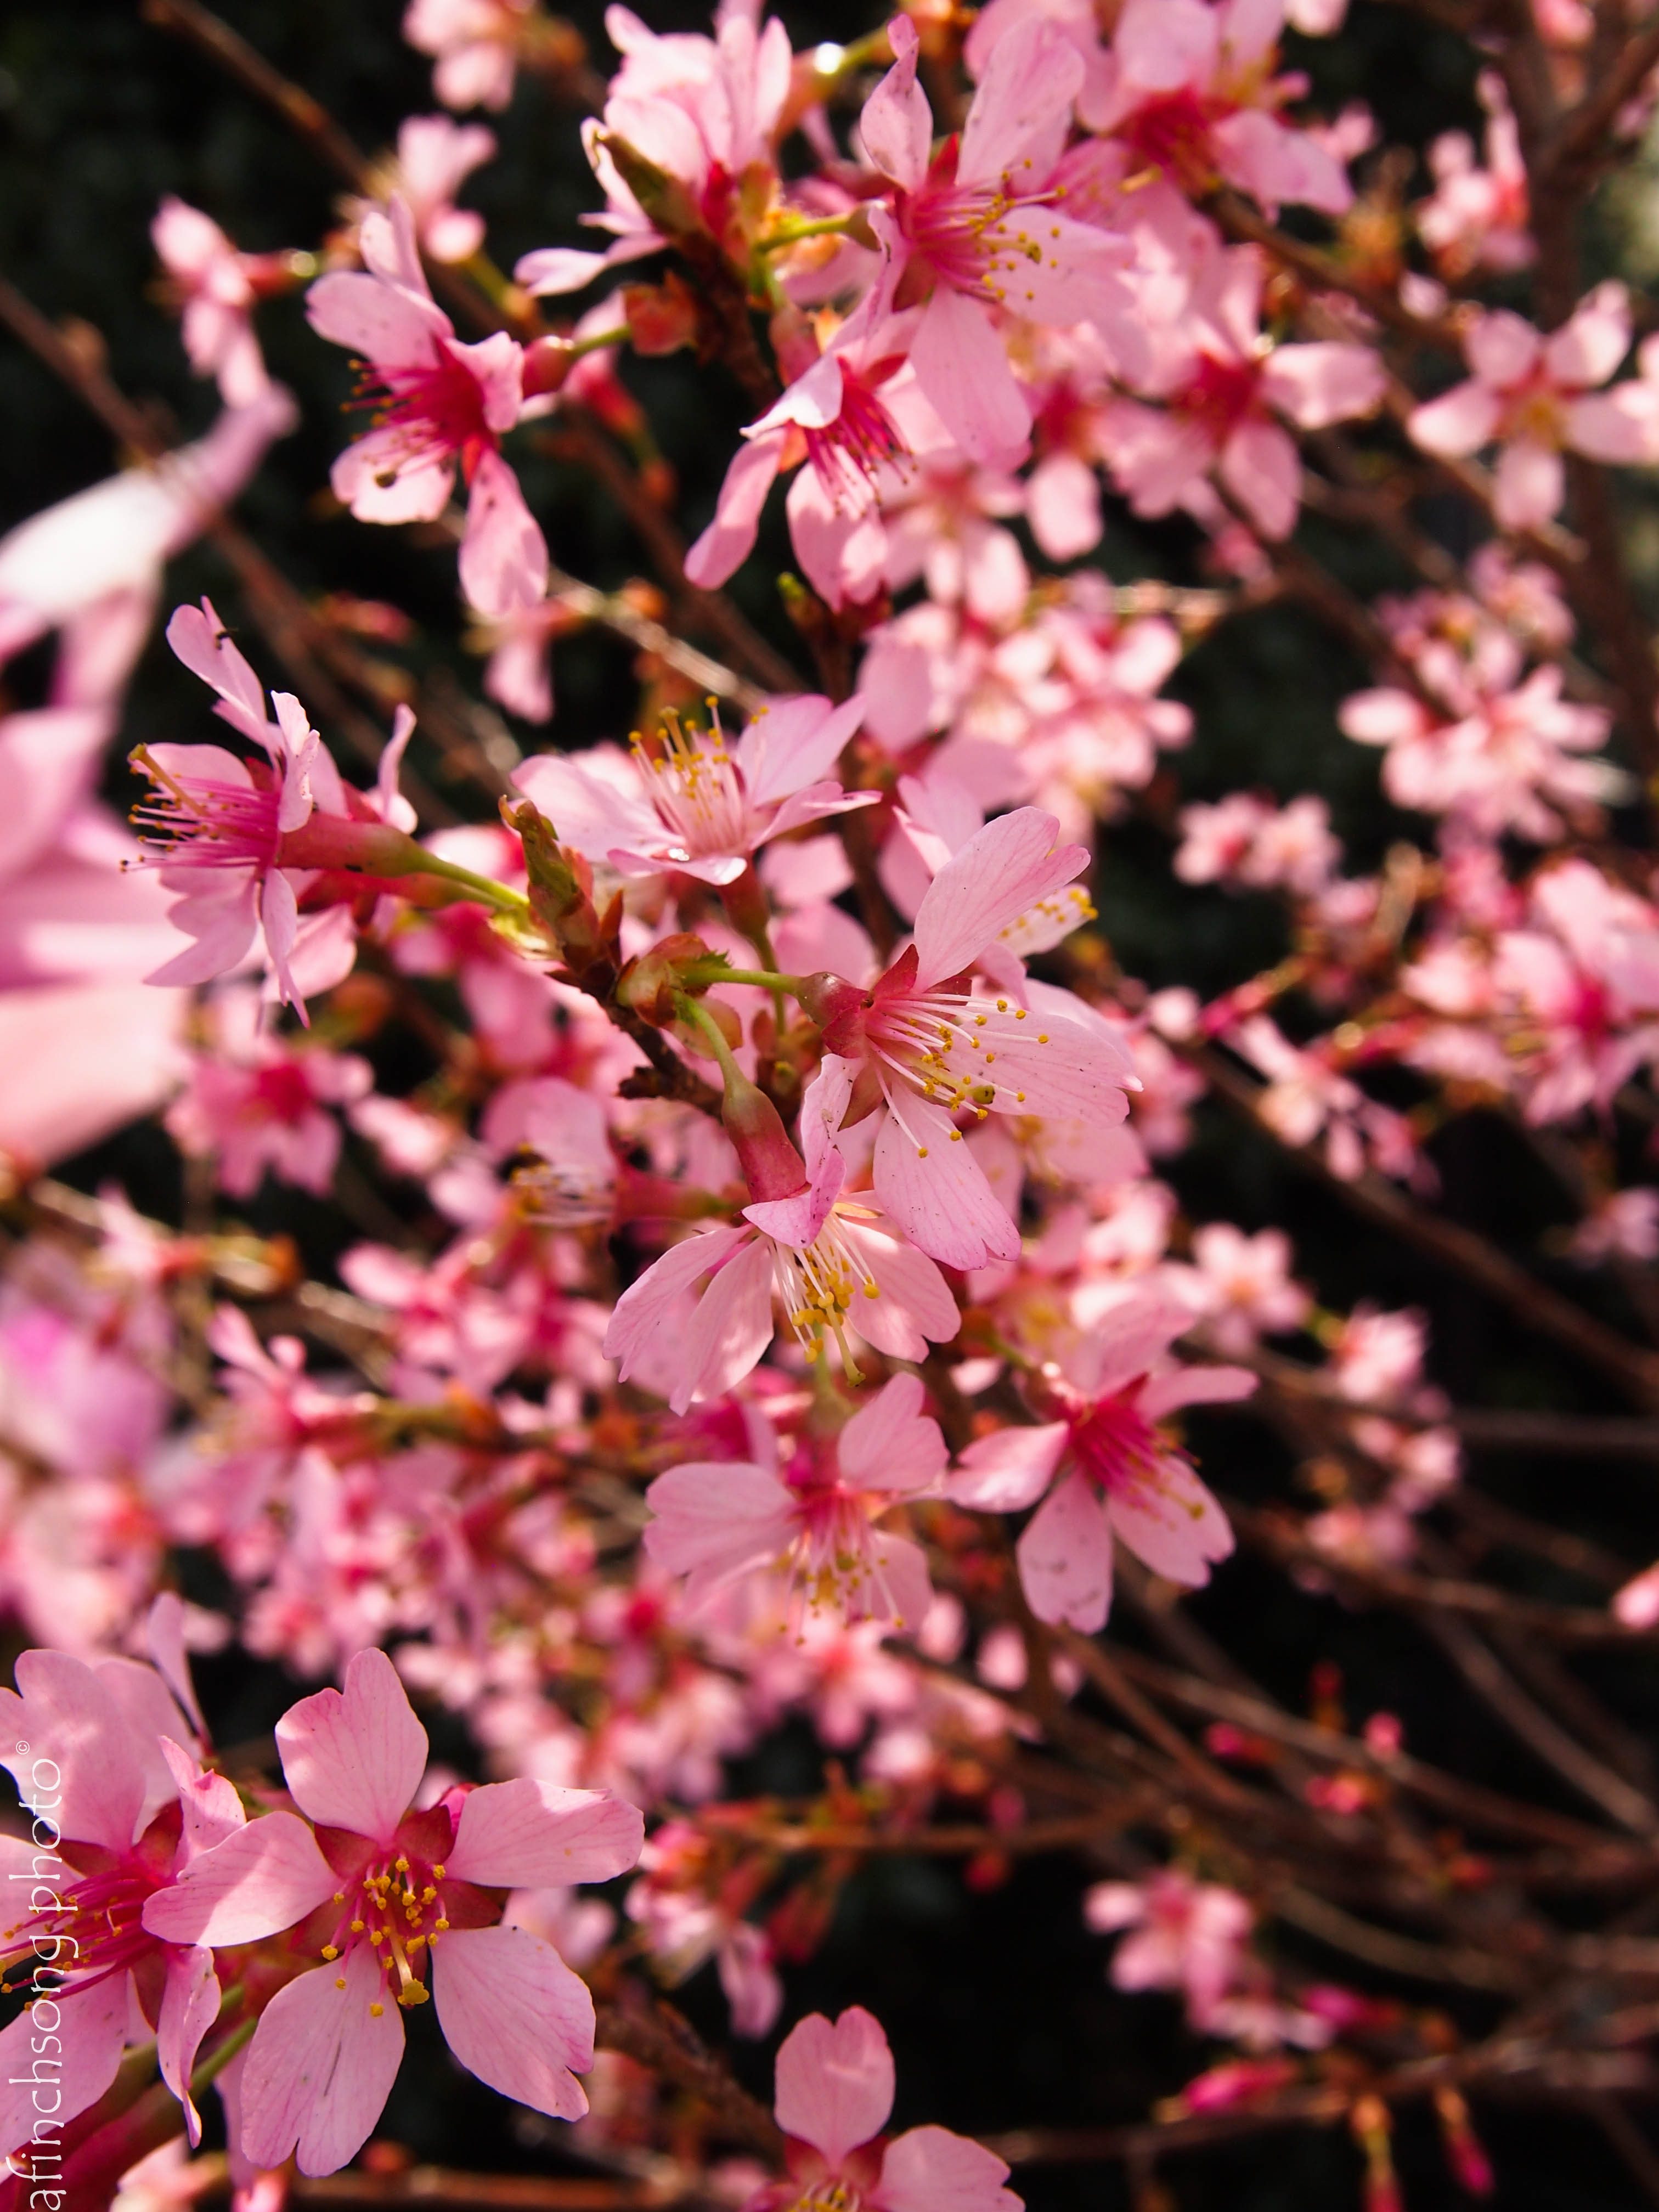 Free photo pink petaled flowers on brown roof near green leaves pink petaled flowers on brown roof near green leaves tree mightylinksfo